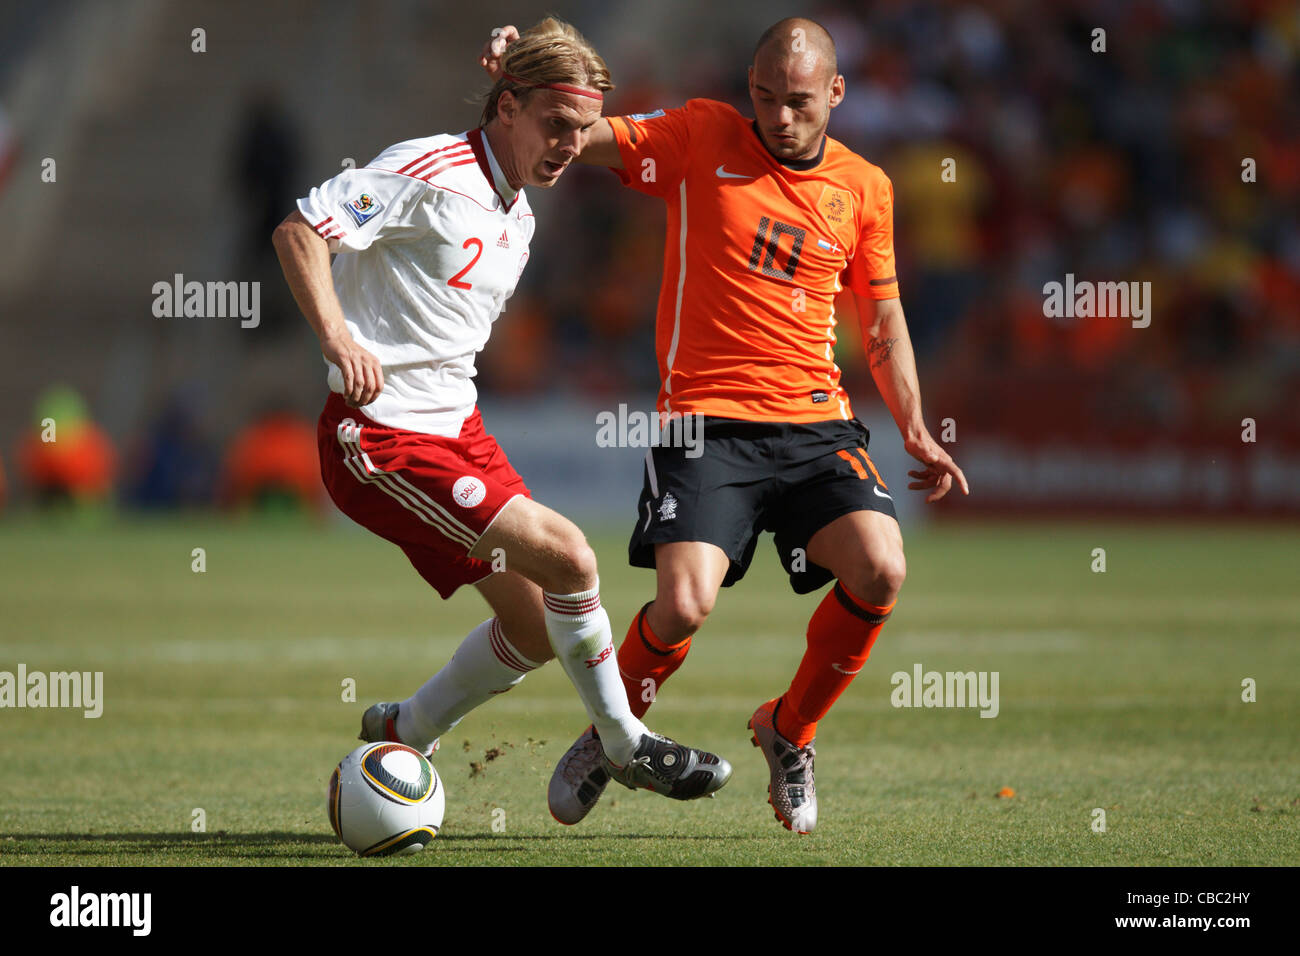 a970cc907ad Christian Poulsen of Denmark (L) keeps the ball from Wesley Sneijder of  Holland (